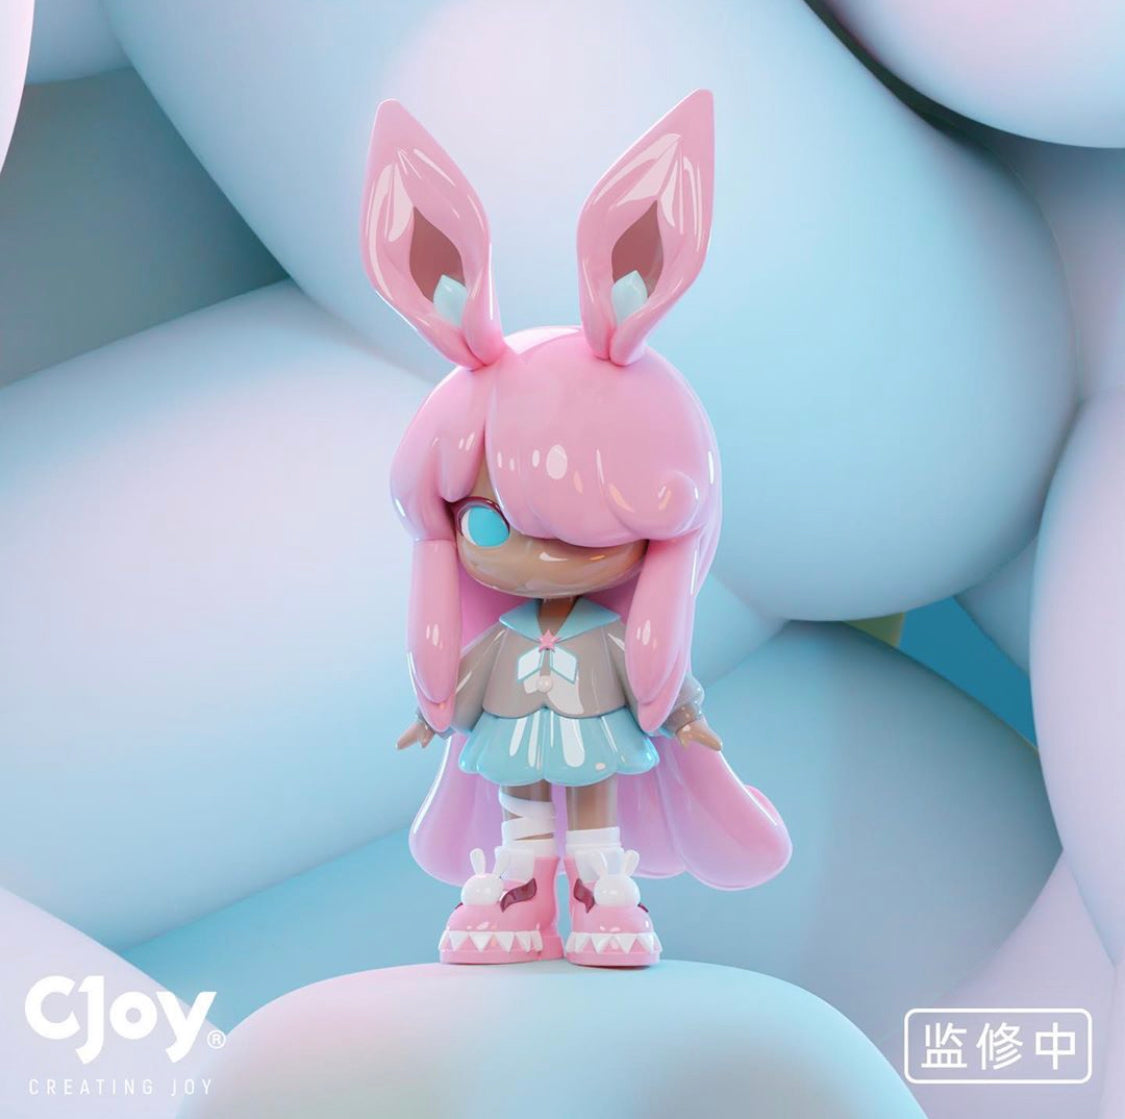 Niki The Magician by Nannan x CJOY - Preorder